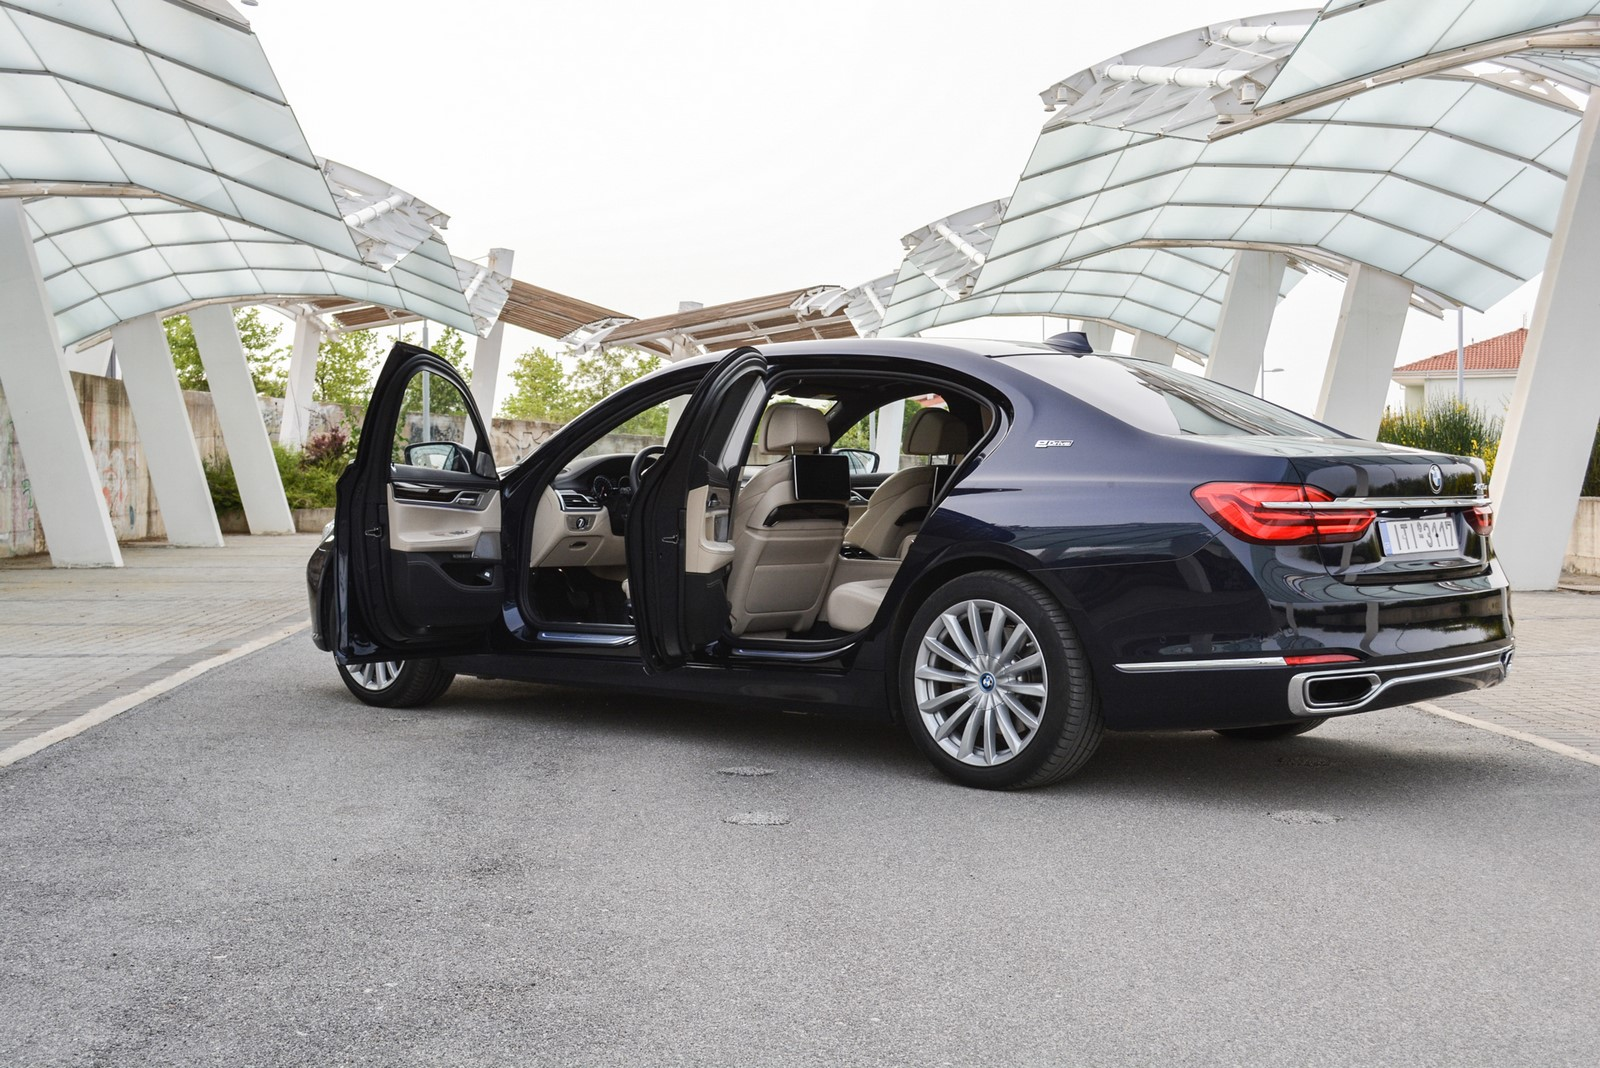 BMW 740Le - Test Drive BMW 7-Serries Autoblog.gr